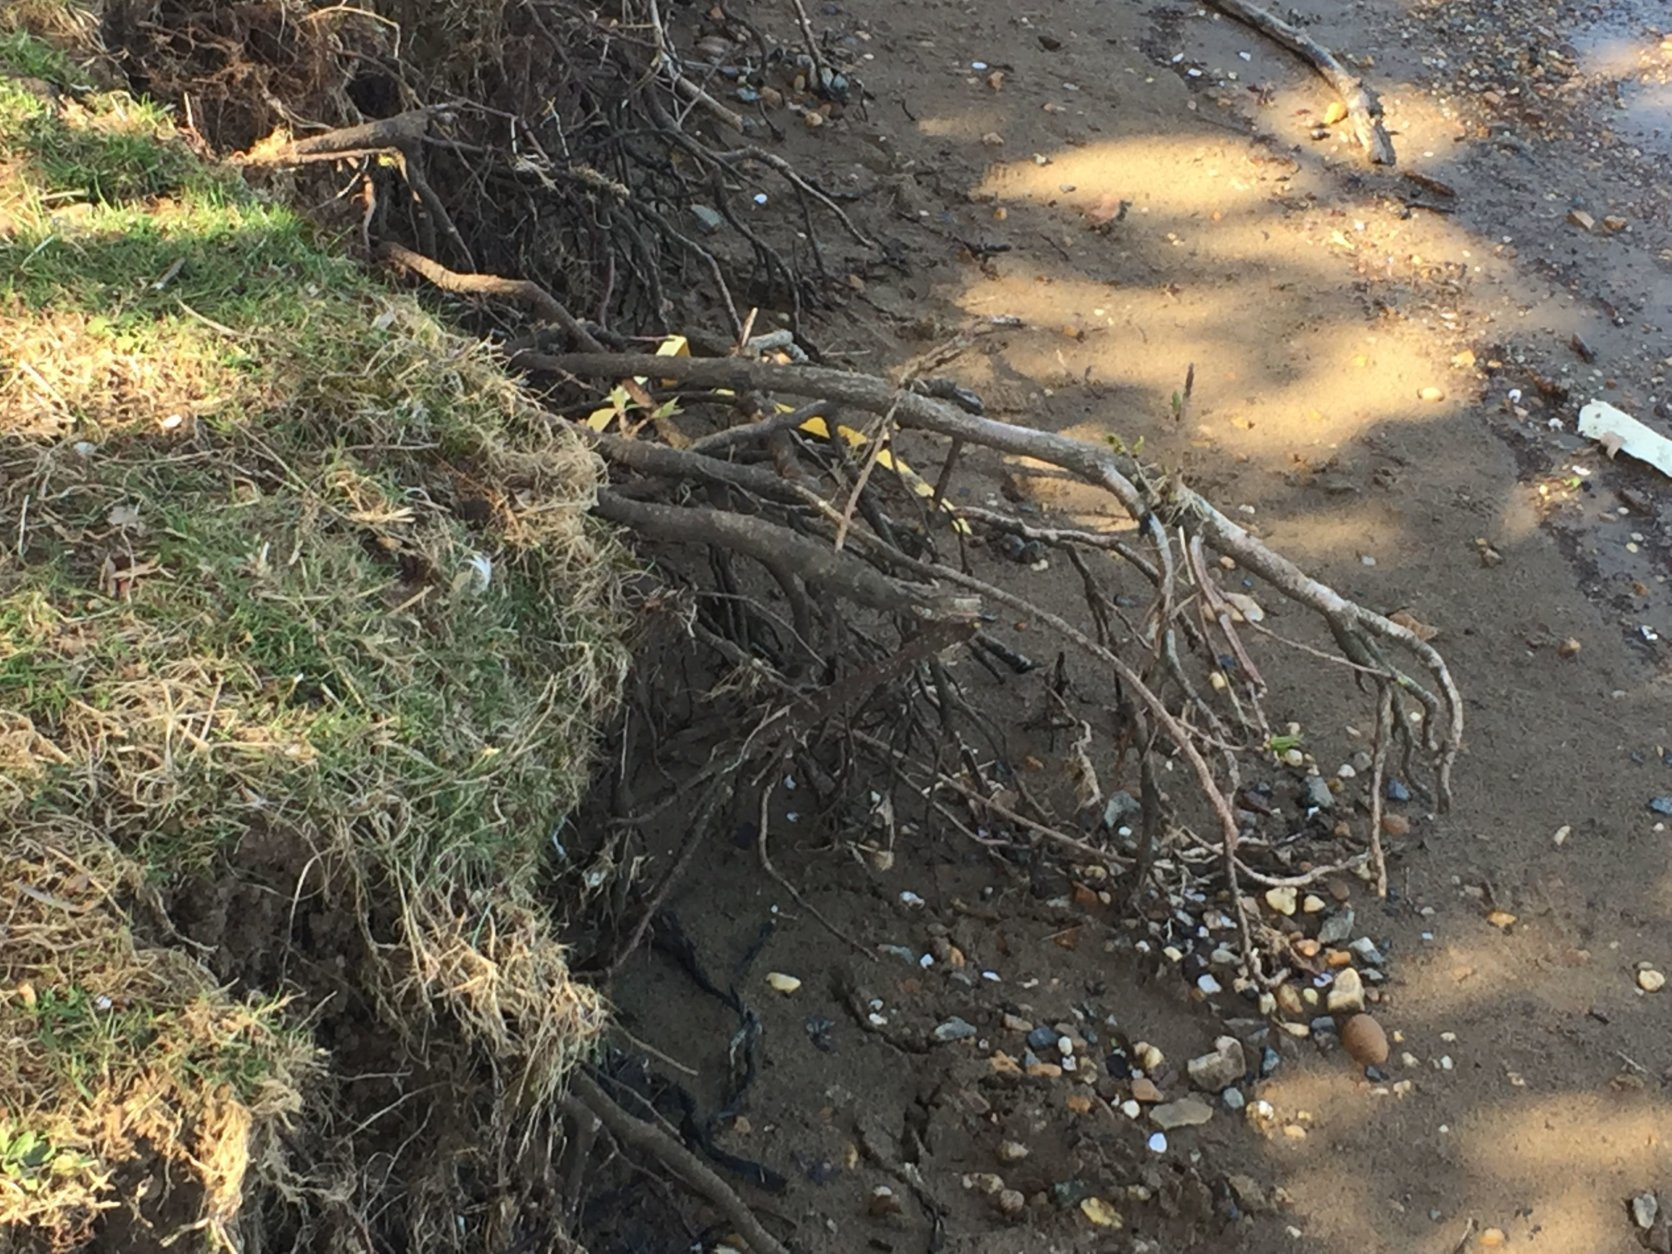 Another effect of the weakened seawall: The roots of the famed cherry trees are exposed and dangling in the open air.(WTOP/John Domen)